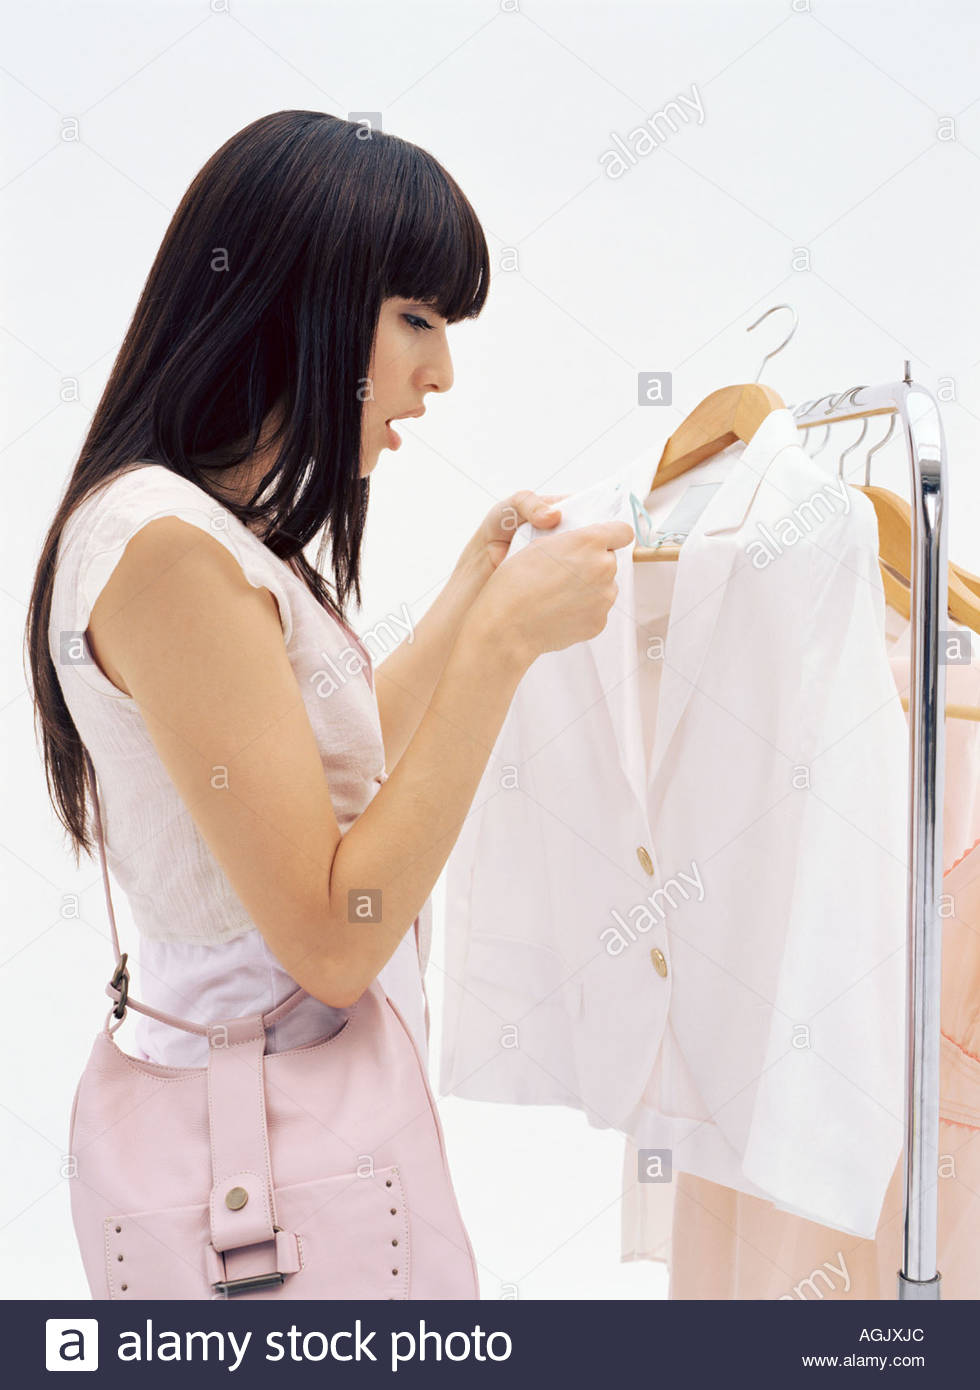 Woman looking at jacket price label - Stock Image